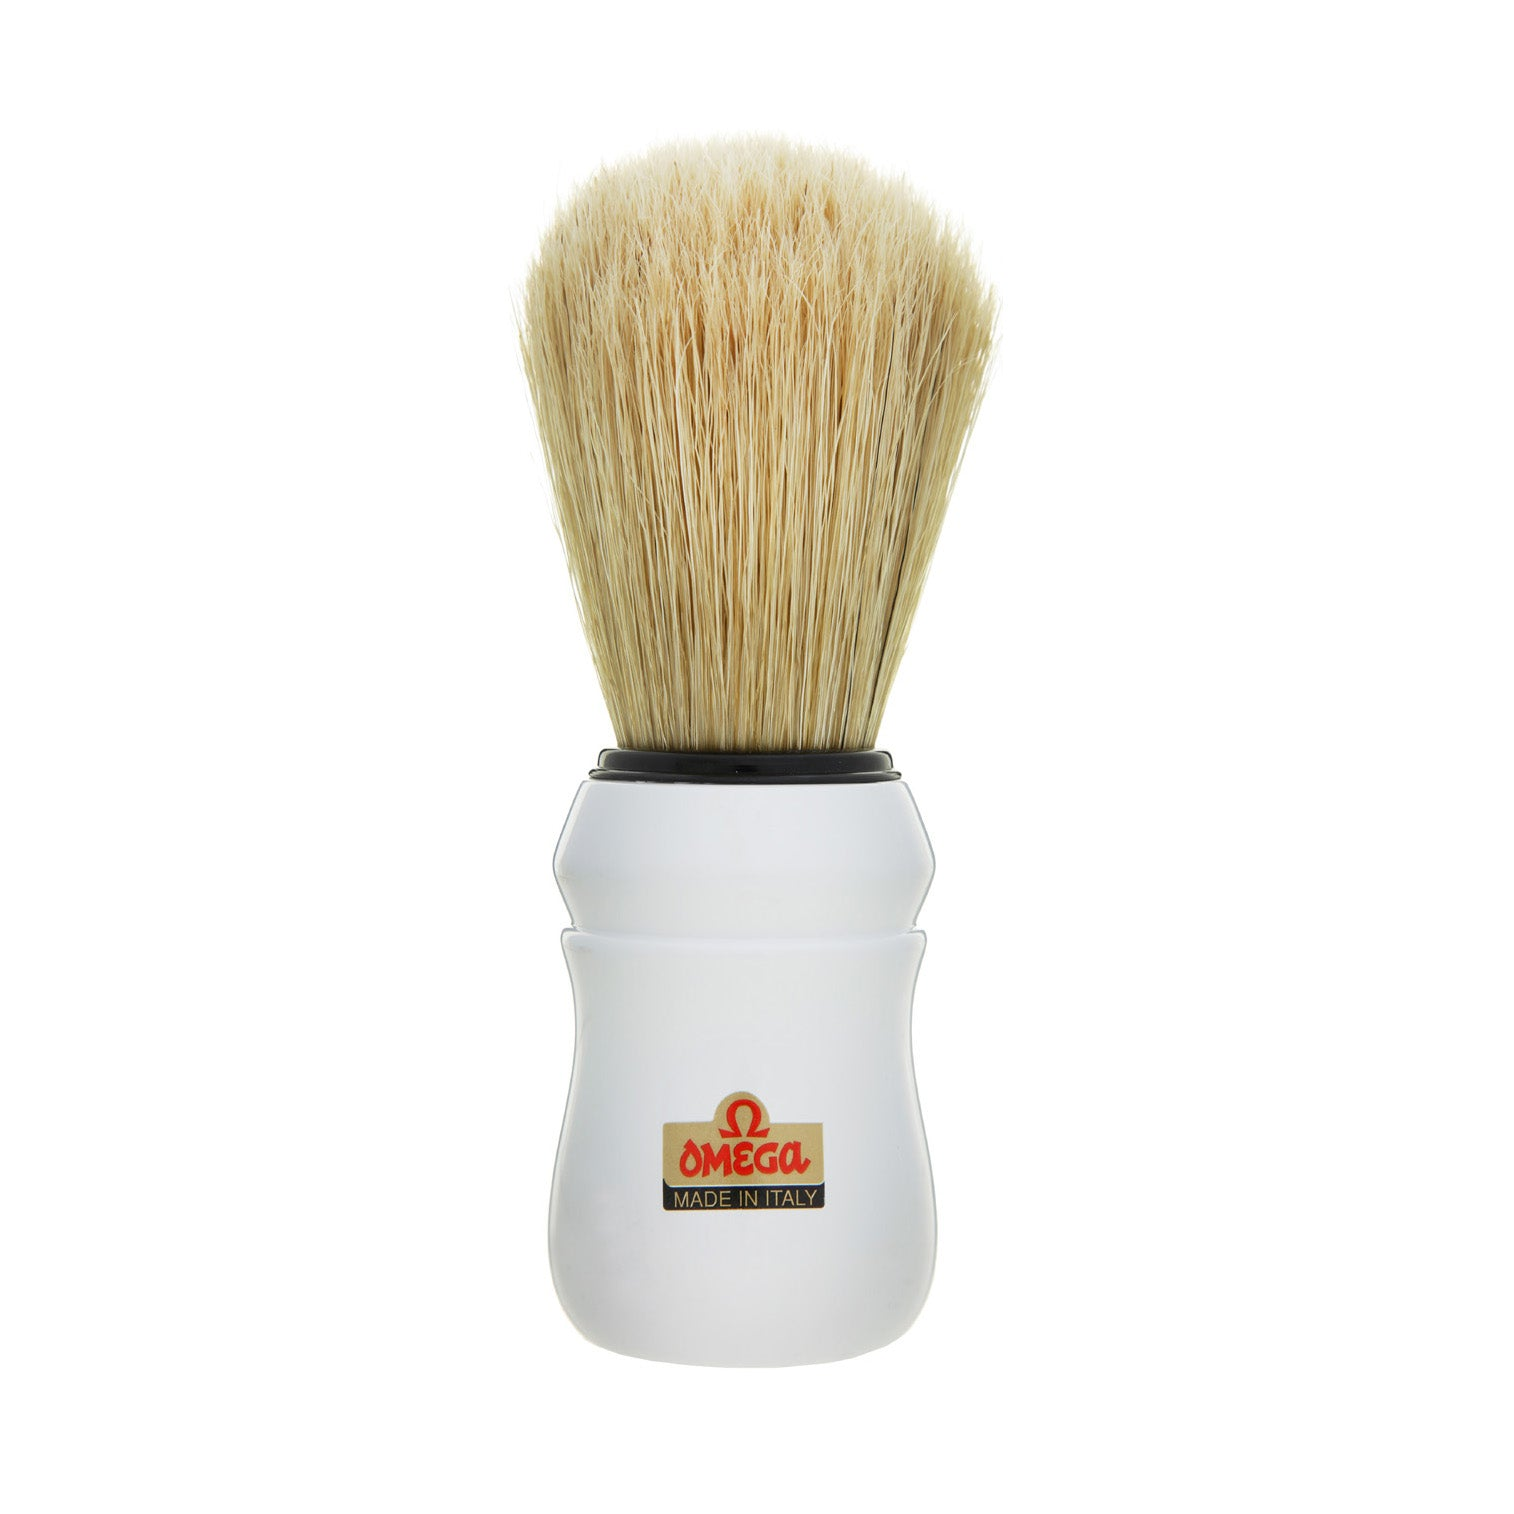 Omega - Boar Bristle Shaving Brush, ABS handle, White - 10049